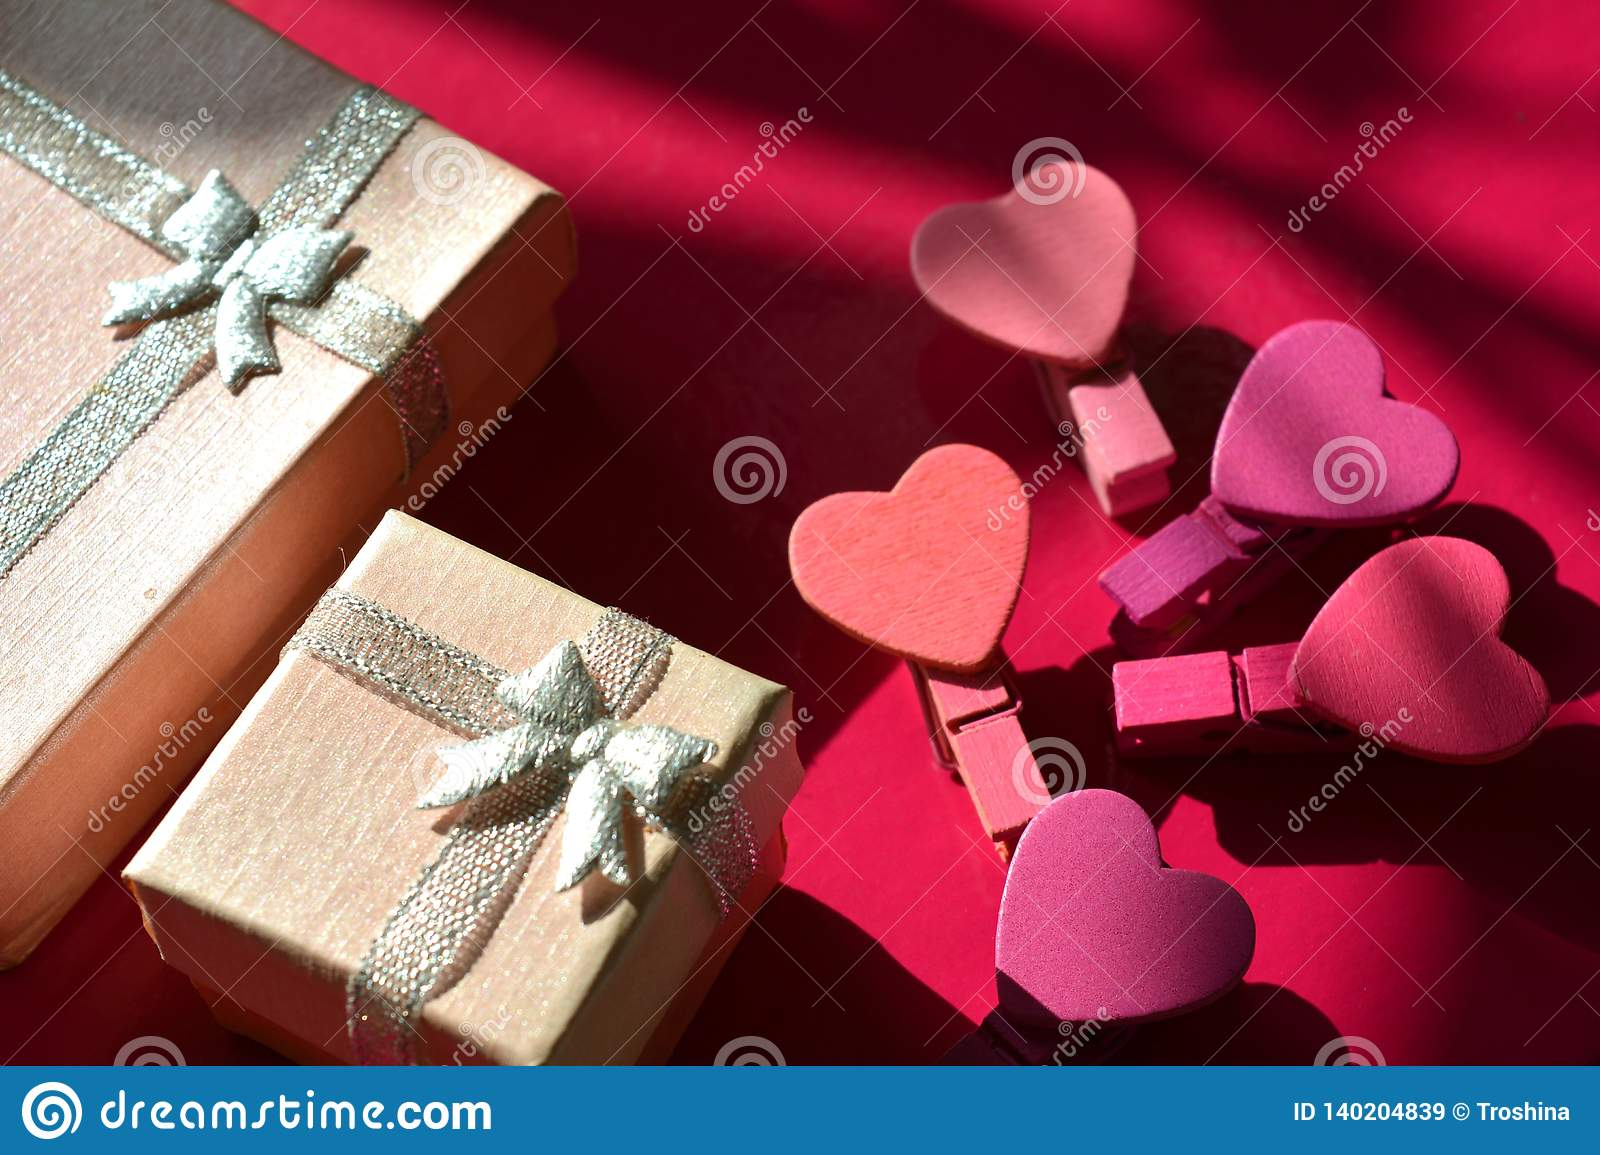 Pink gift box and decorative hearts pink background